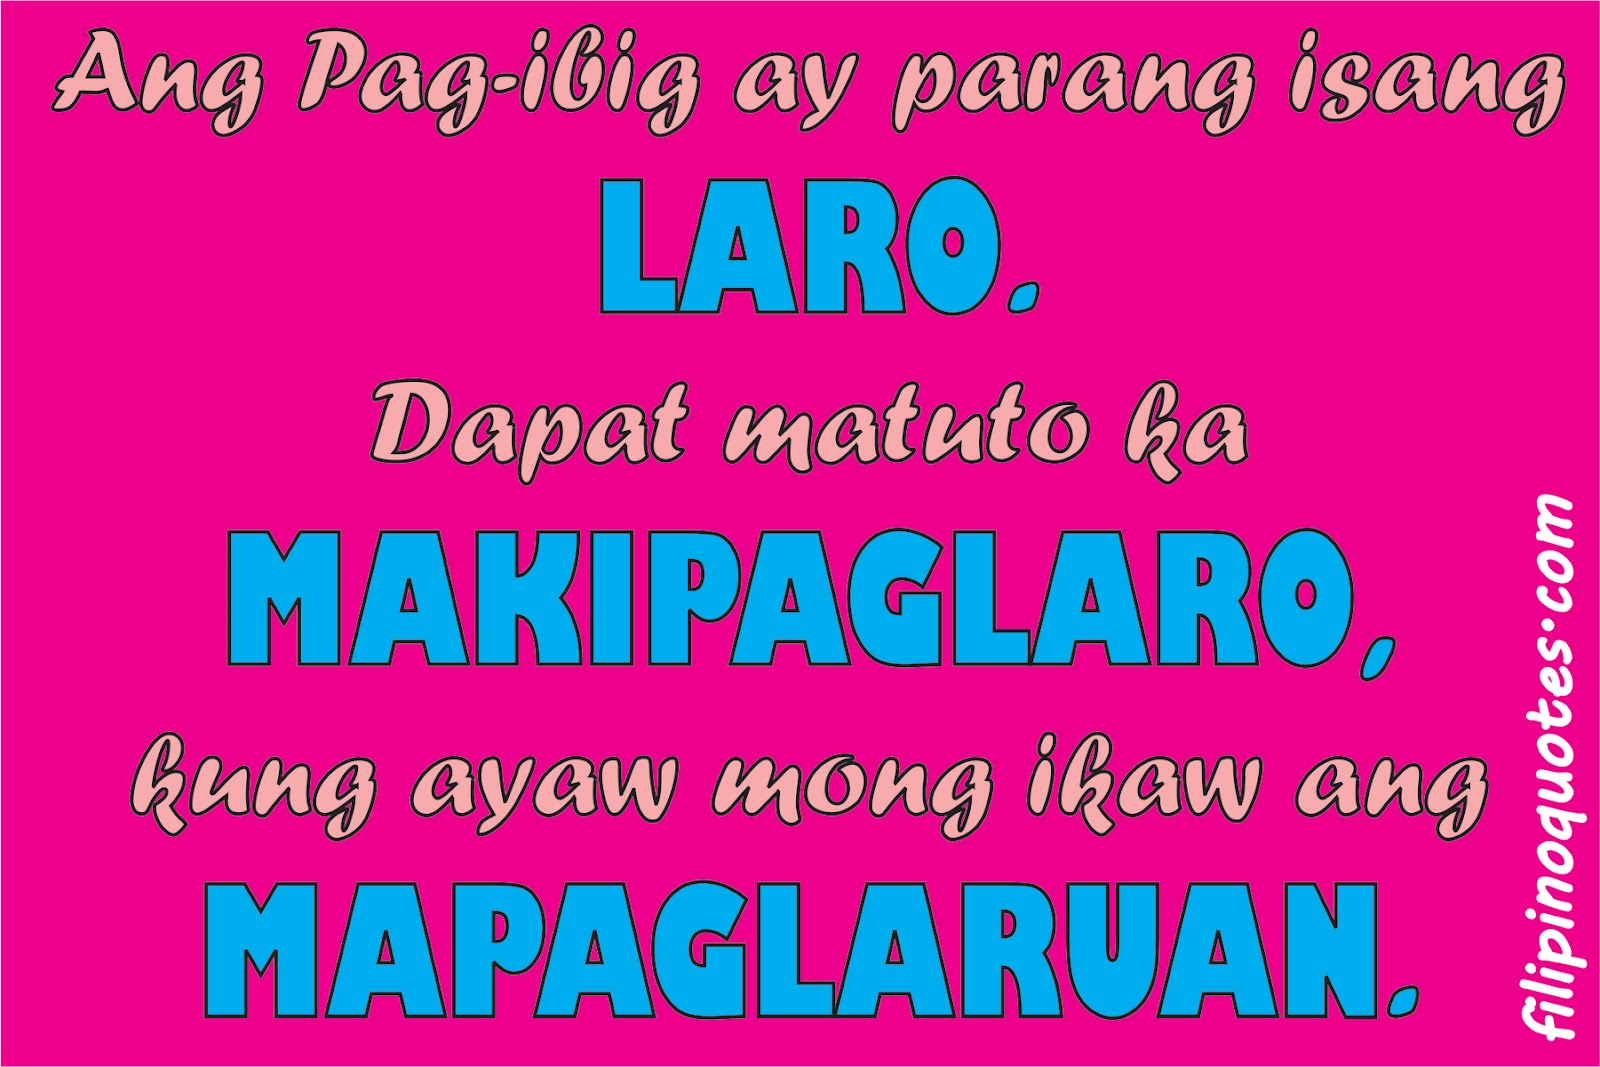 Tagalog Love Quotes May 2012